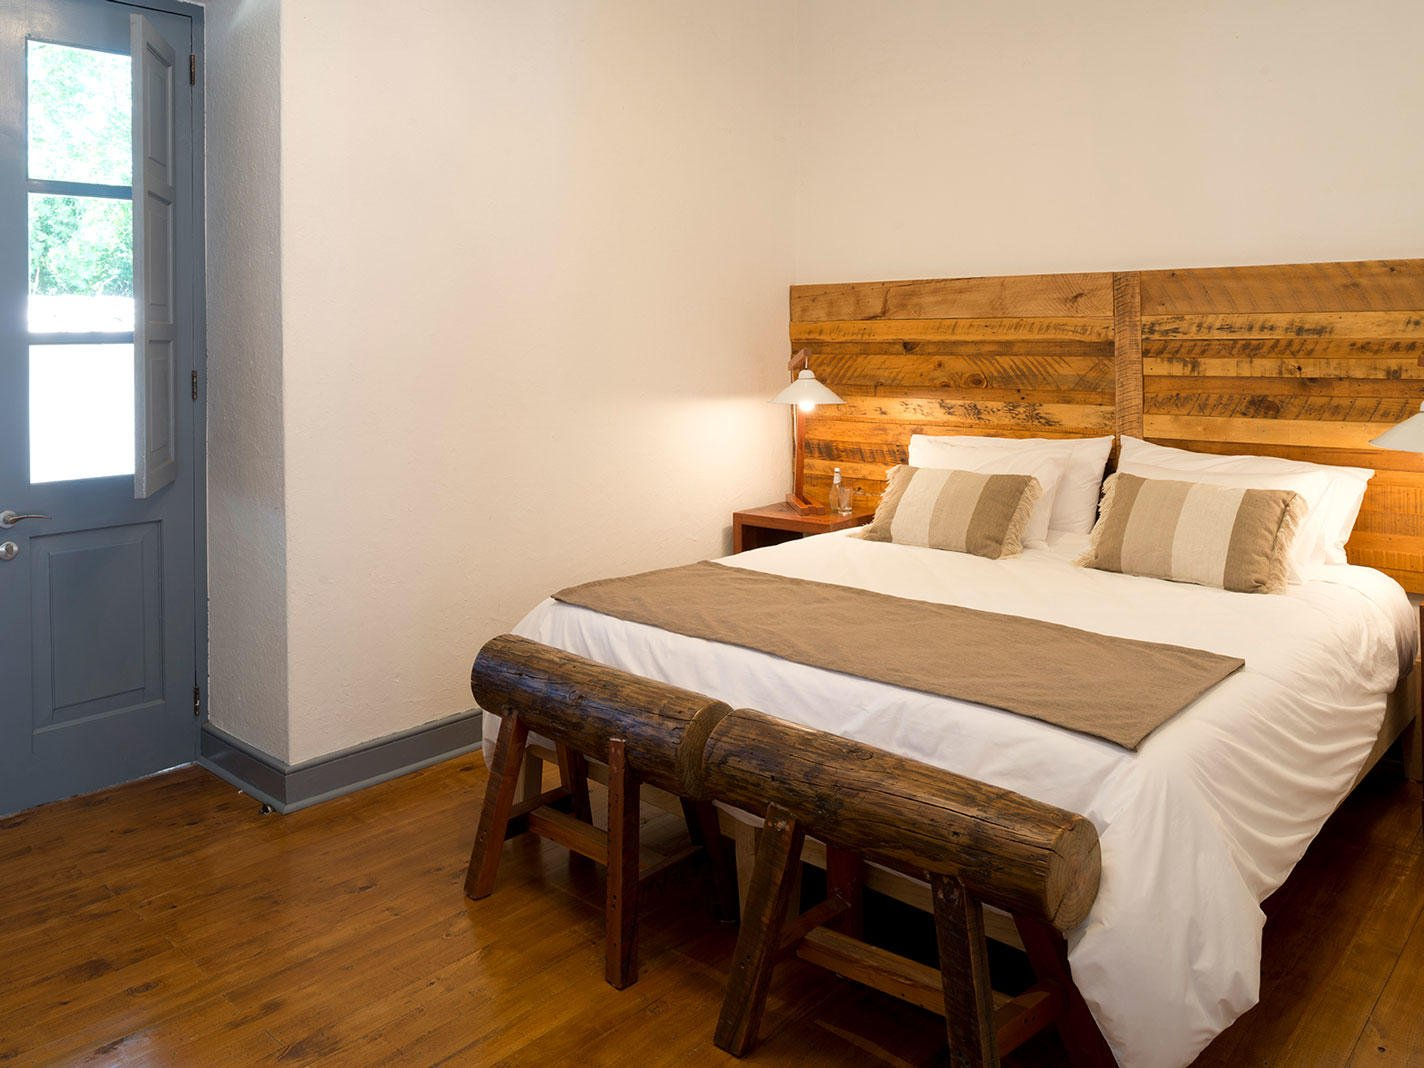 Deluxe King Room bedroom with kingbed at NOI Blend Colchagua